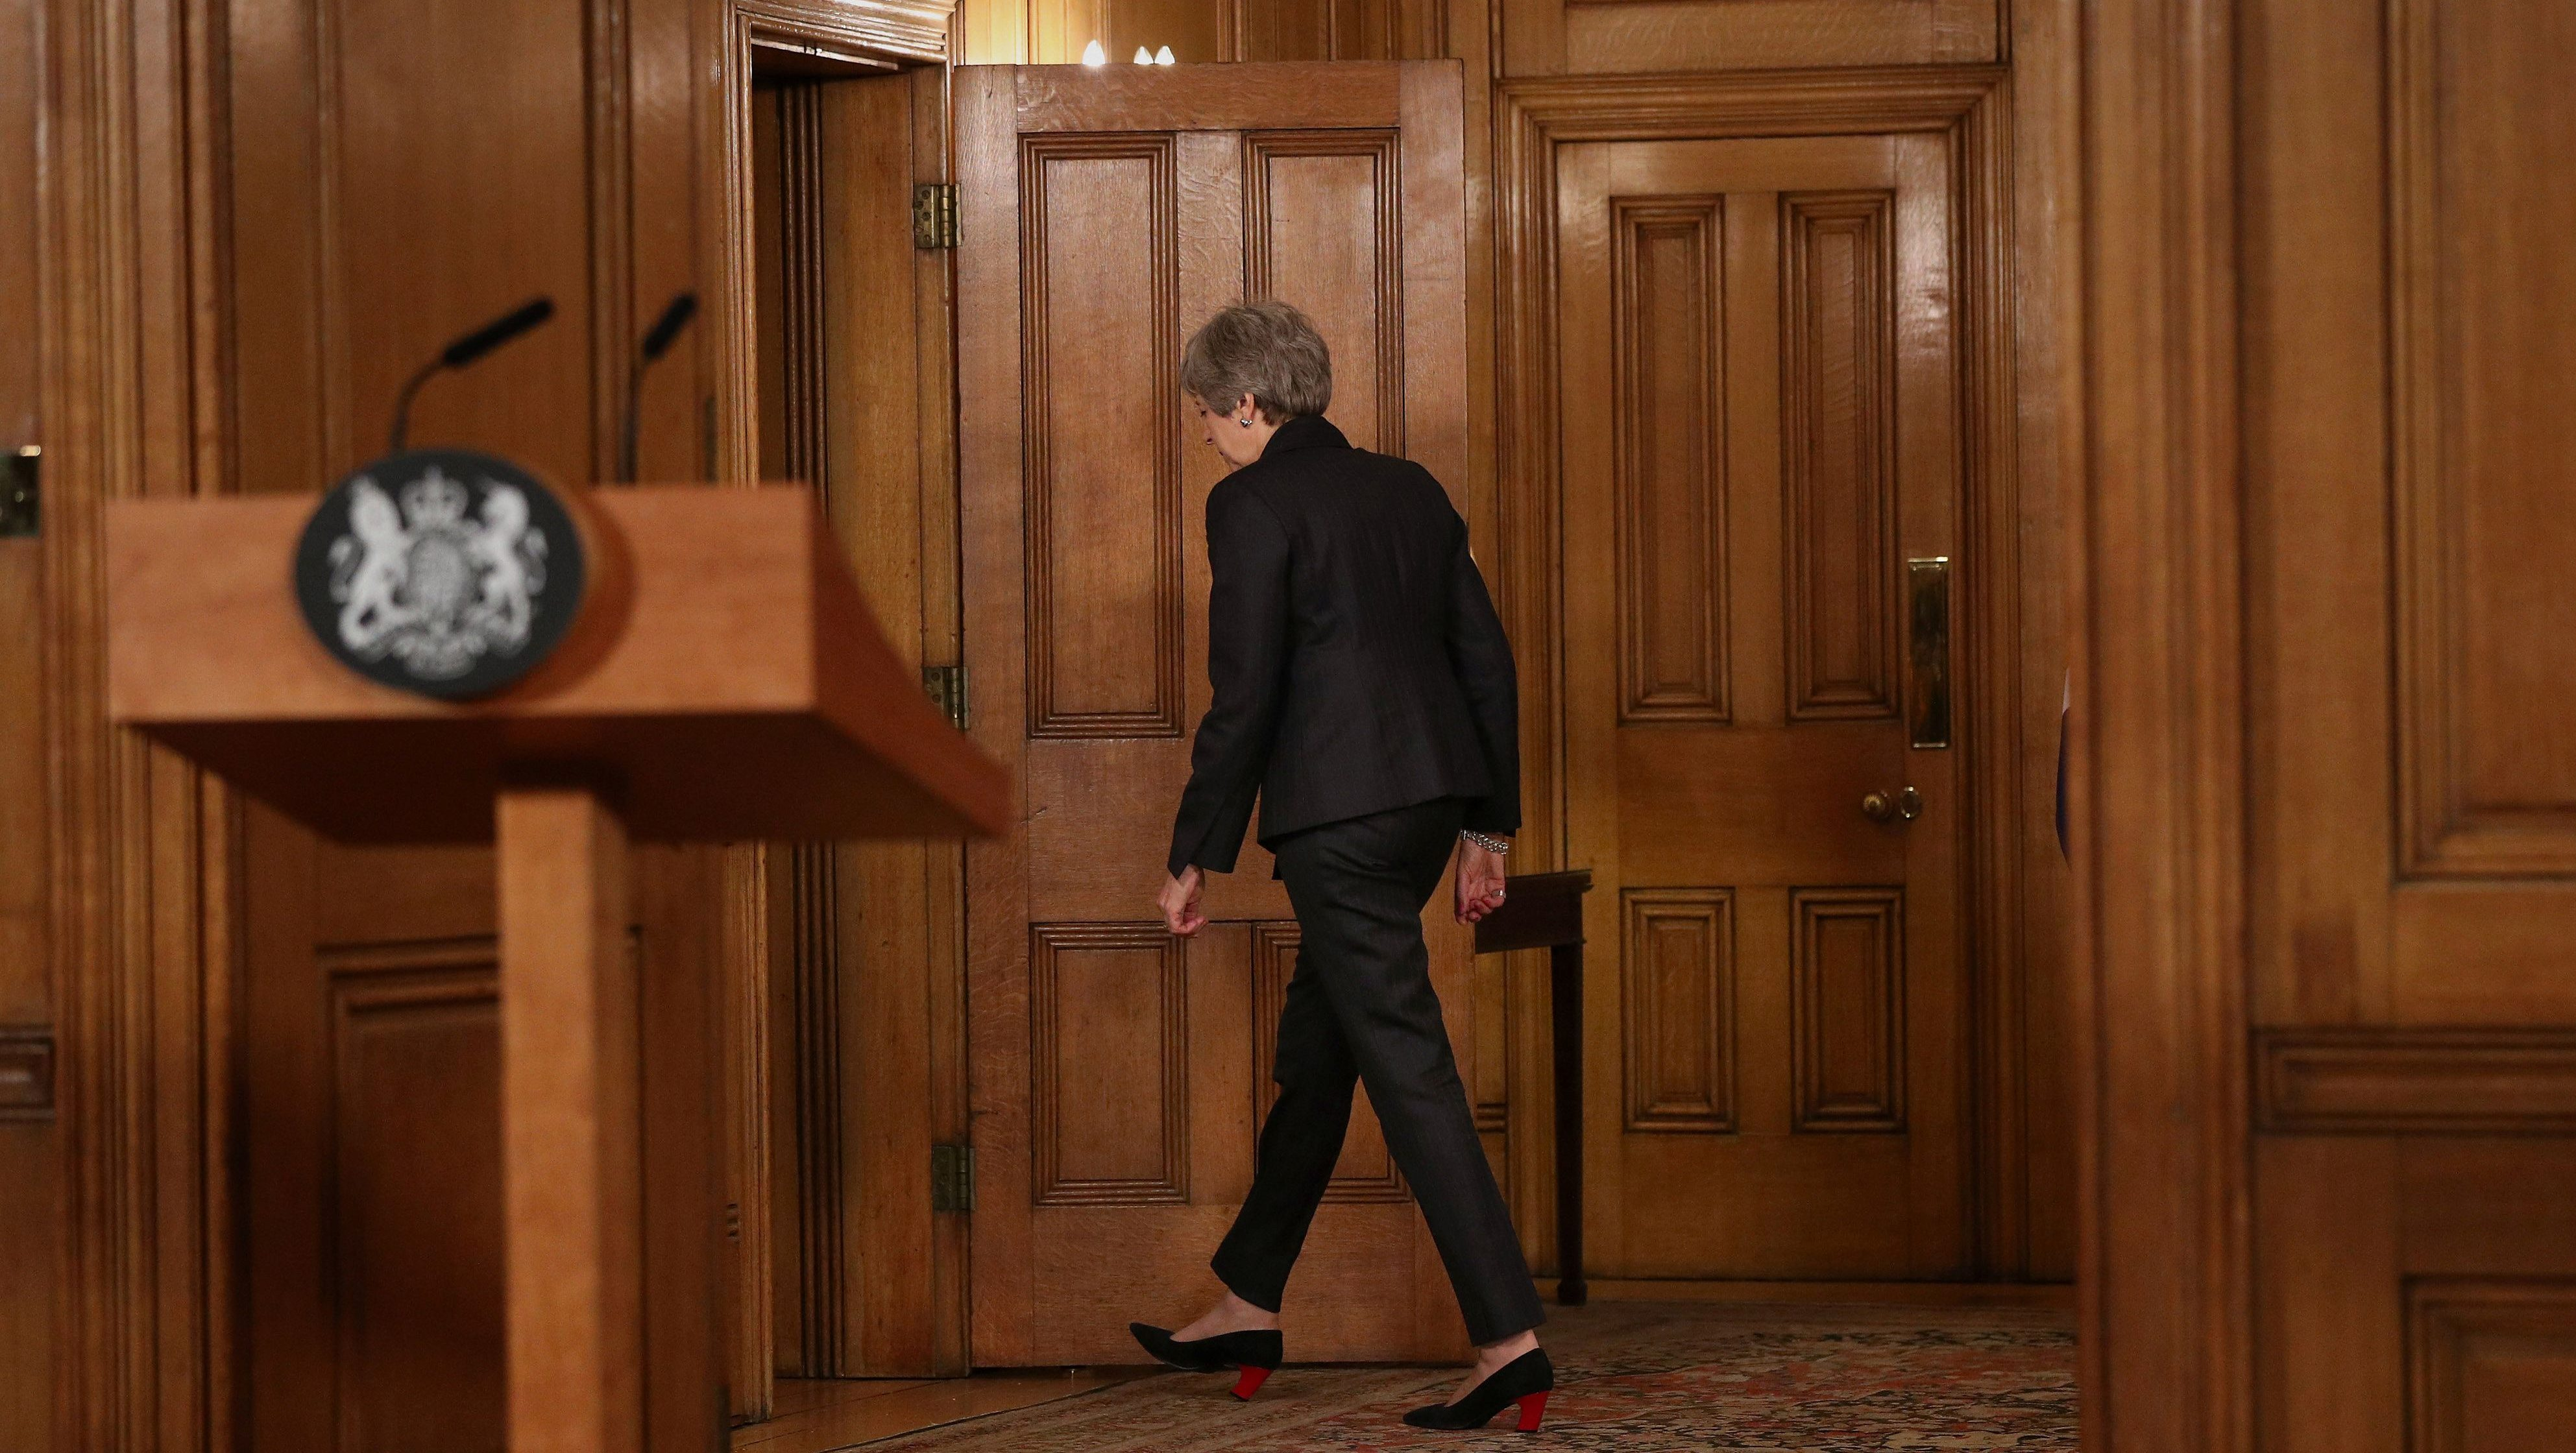 Britain's Prime Minister Theresa May leaves after making a statement about Brexit in Downing Street in London, Britain March 20, 2019.